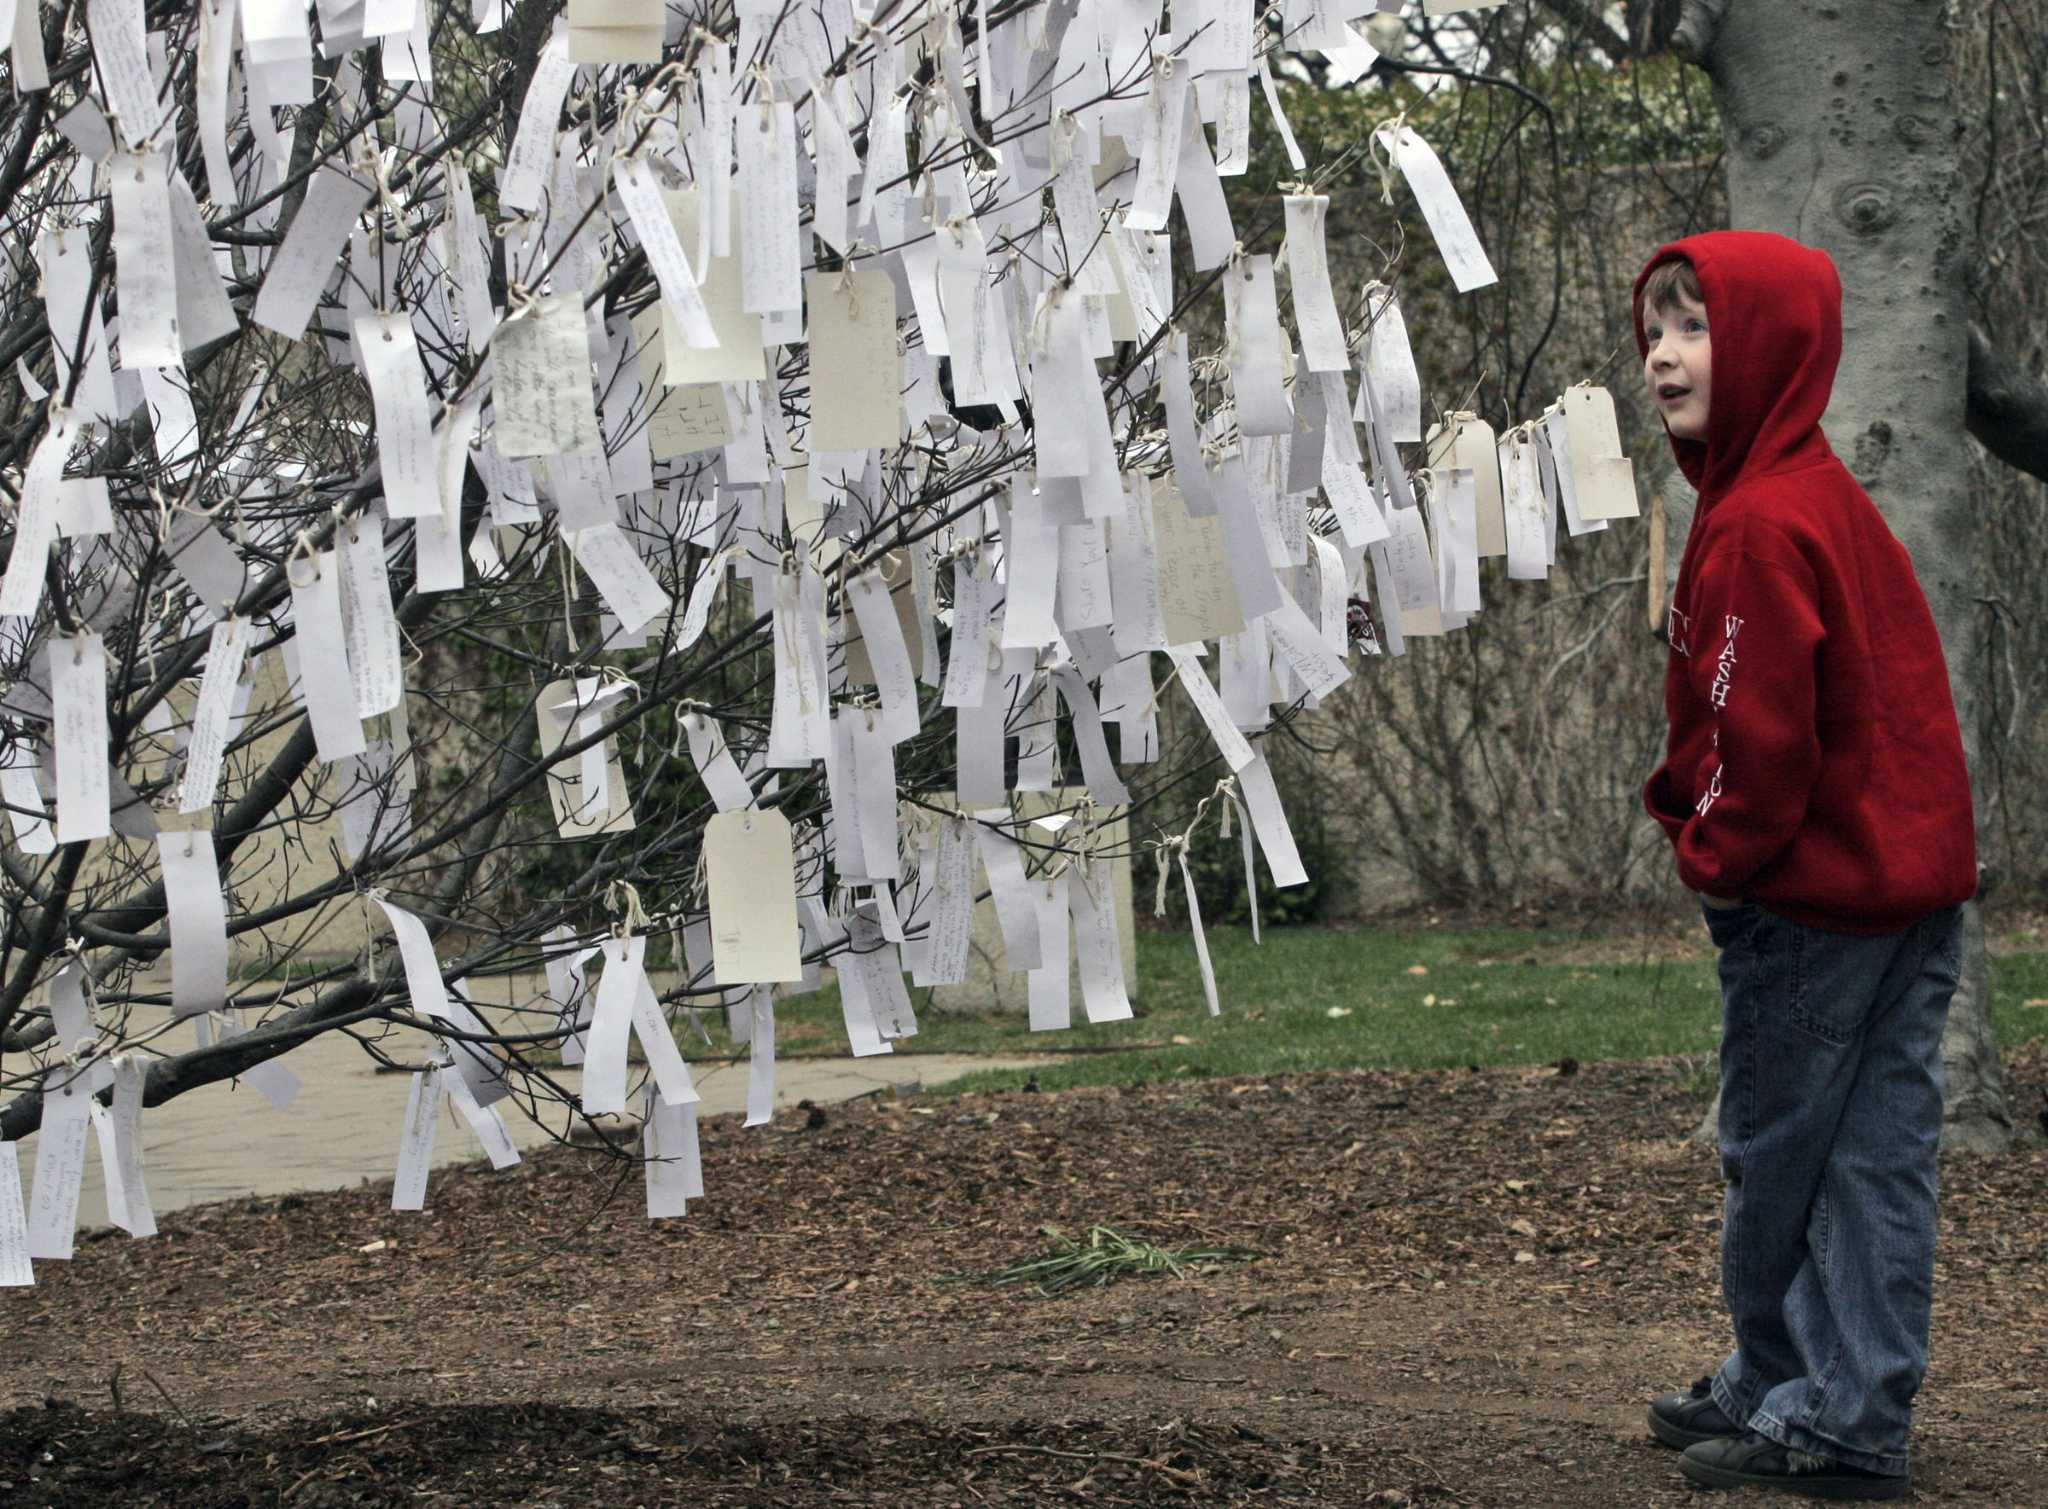 Yoko Ono's 'Wish Tree' at D.C.'s Hirshhorn Sculpture Garden is branching out